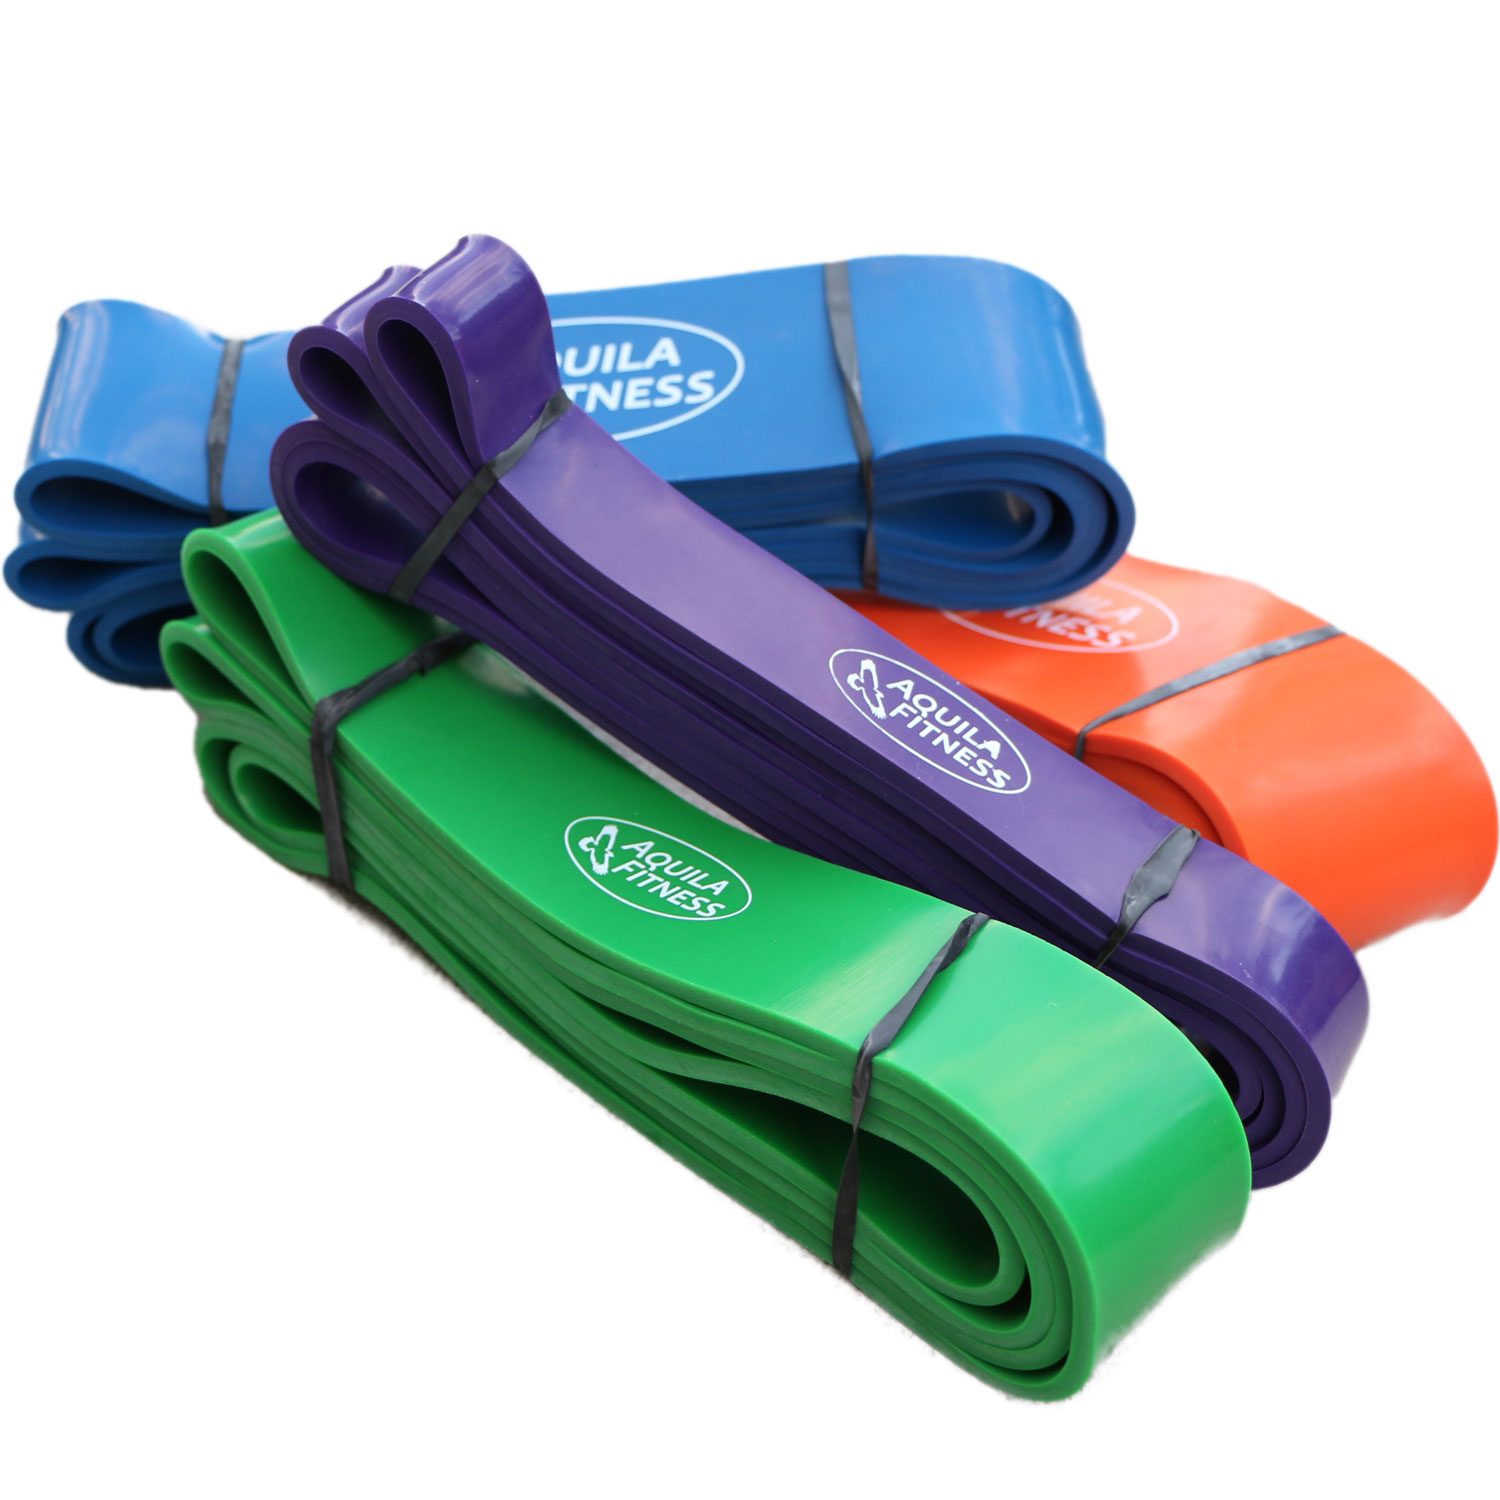 Workout Bands Com: Weight Lifting Resistance Bands